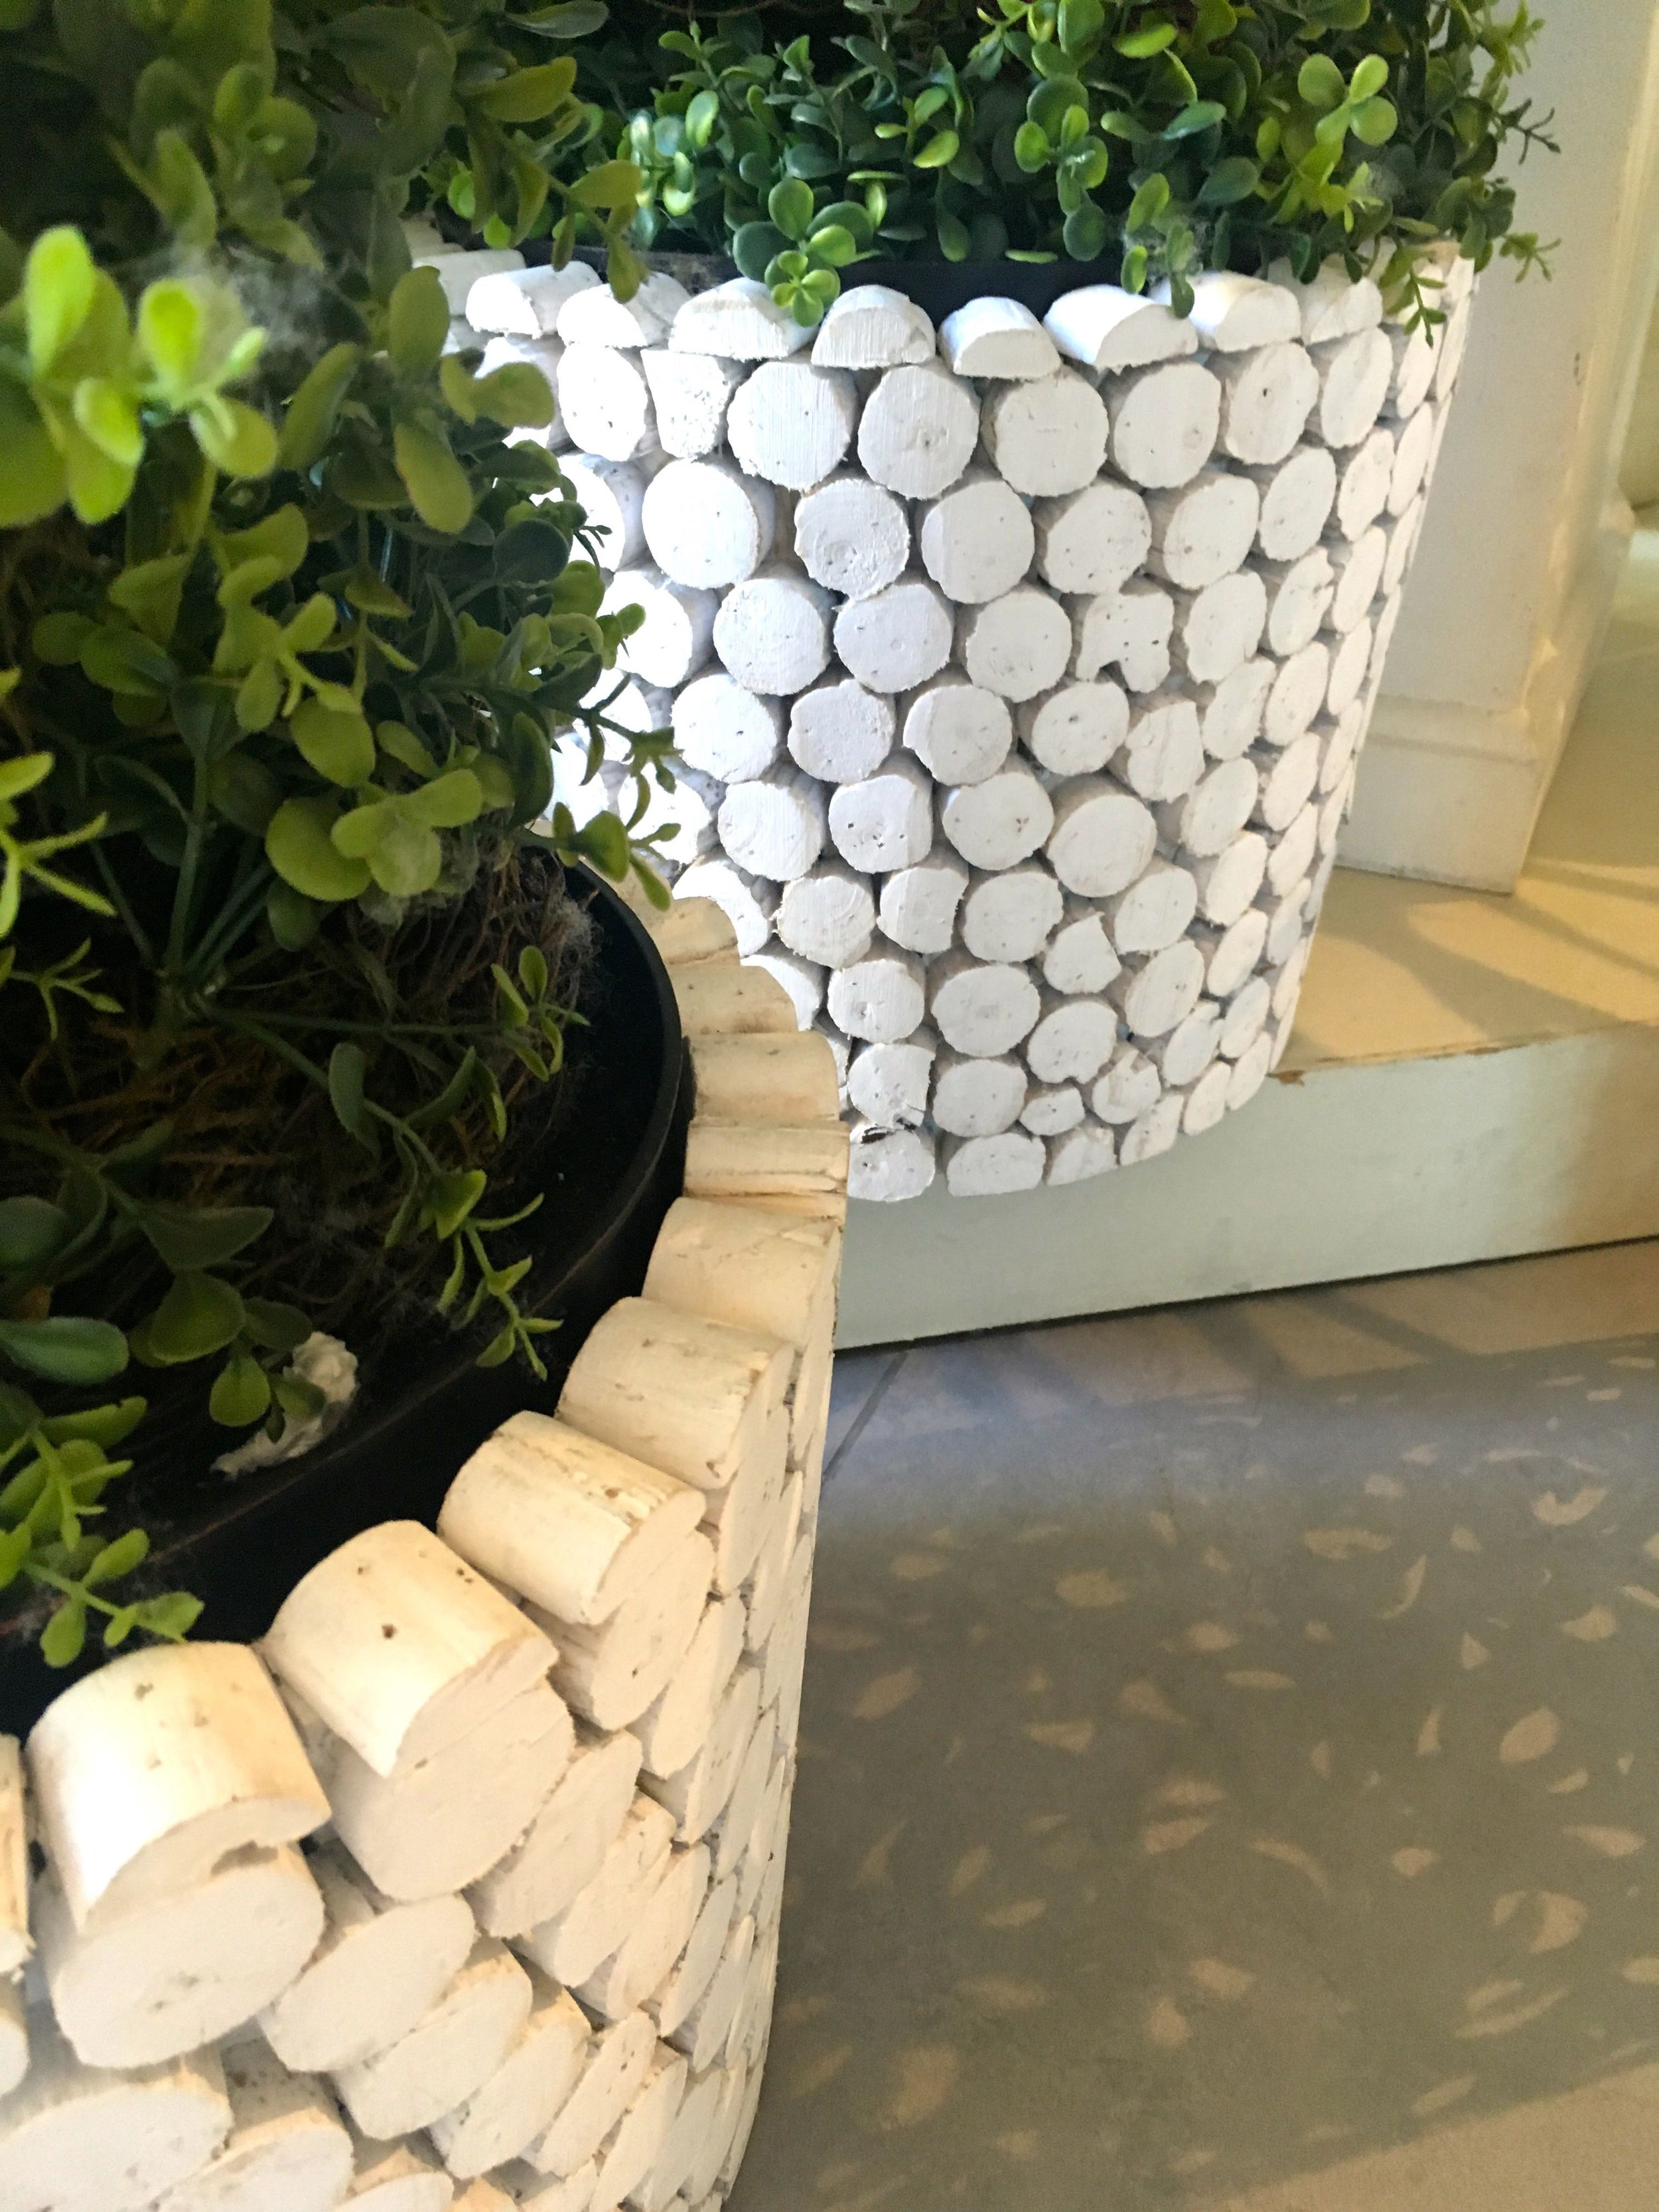 A closer look at the planters